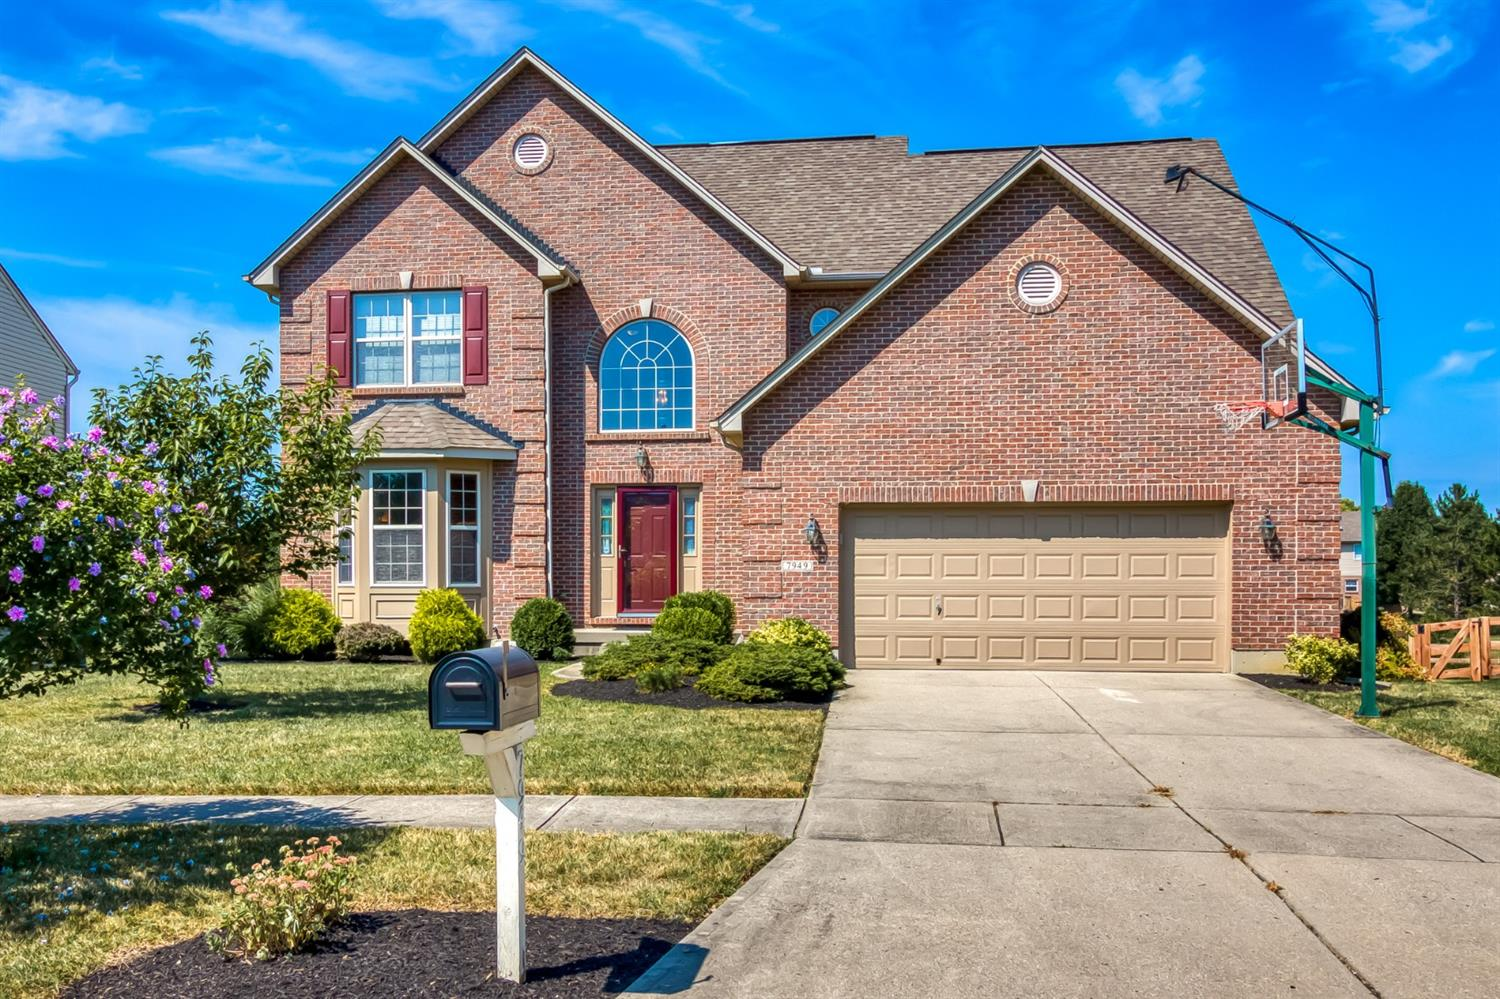 Property for sale at 7949 Threshing Court, West Chester,  Ohio 45069